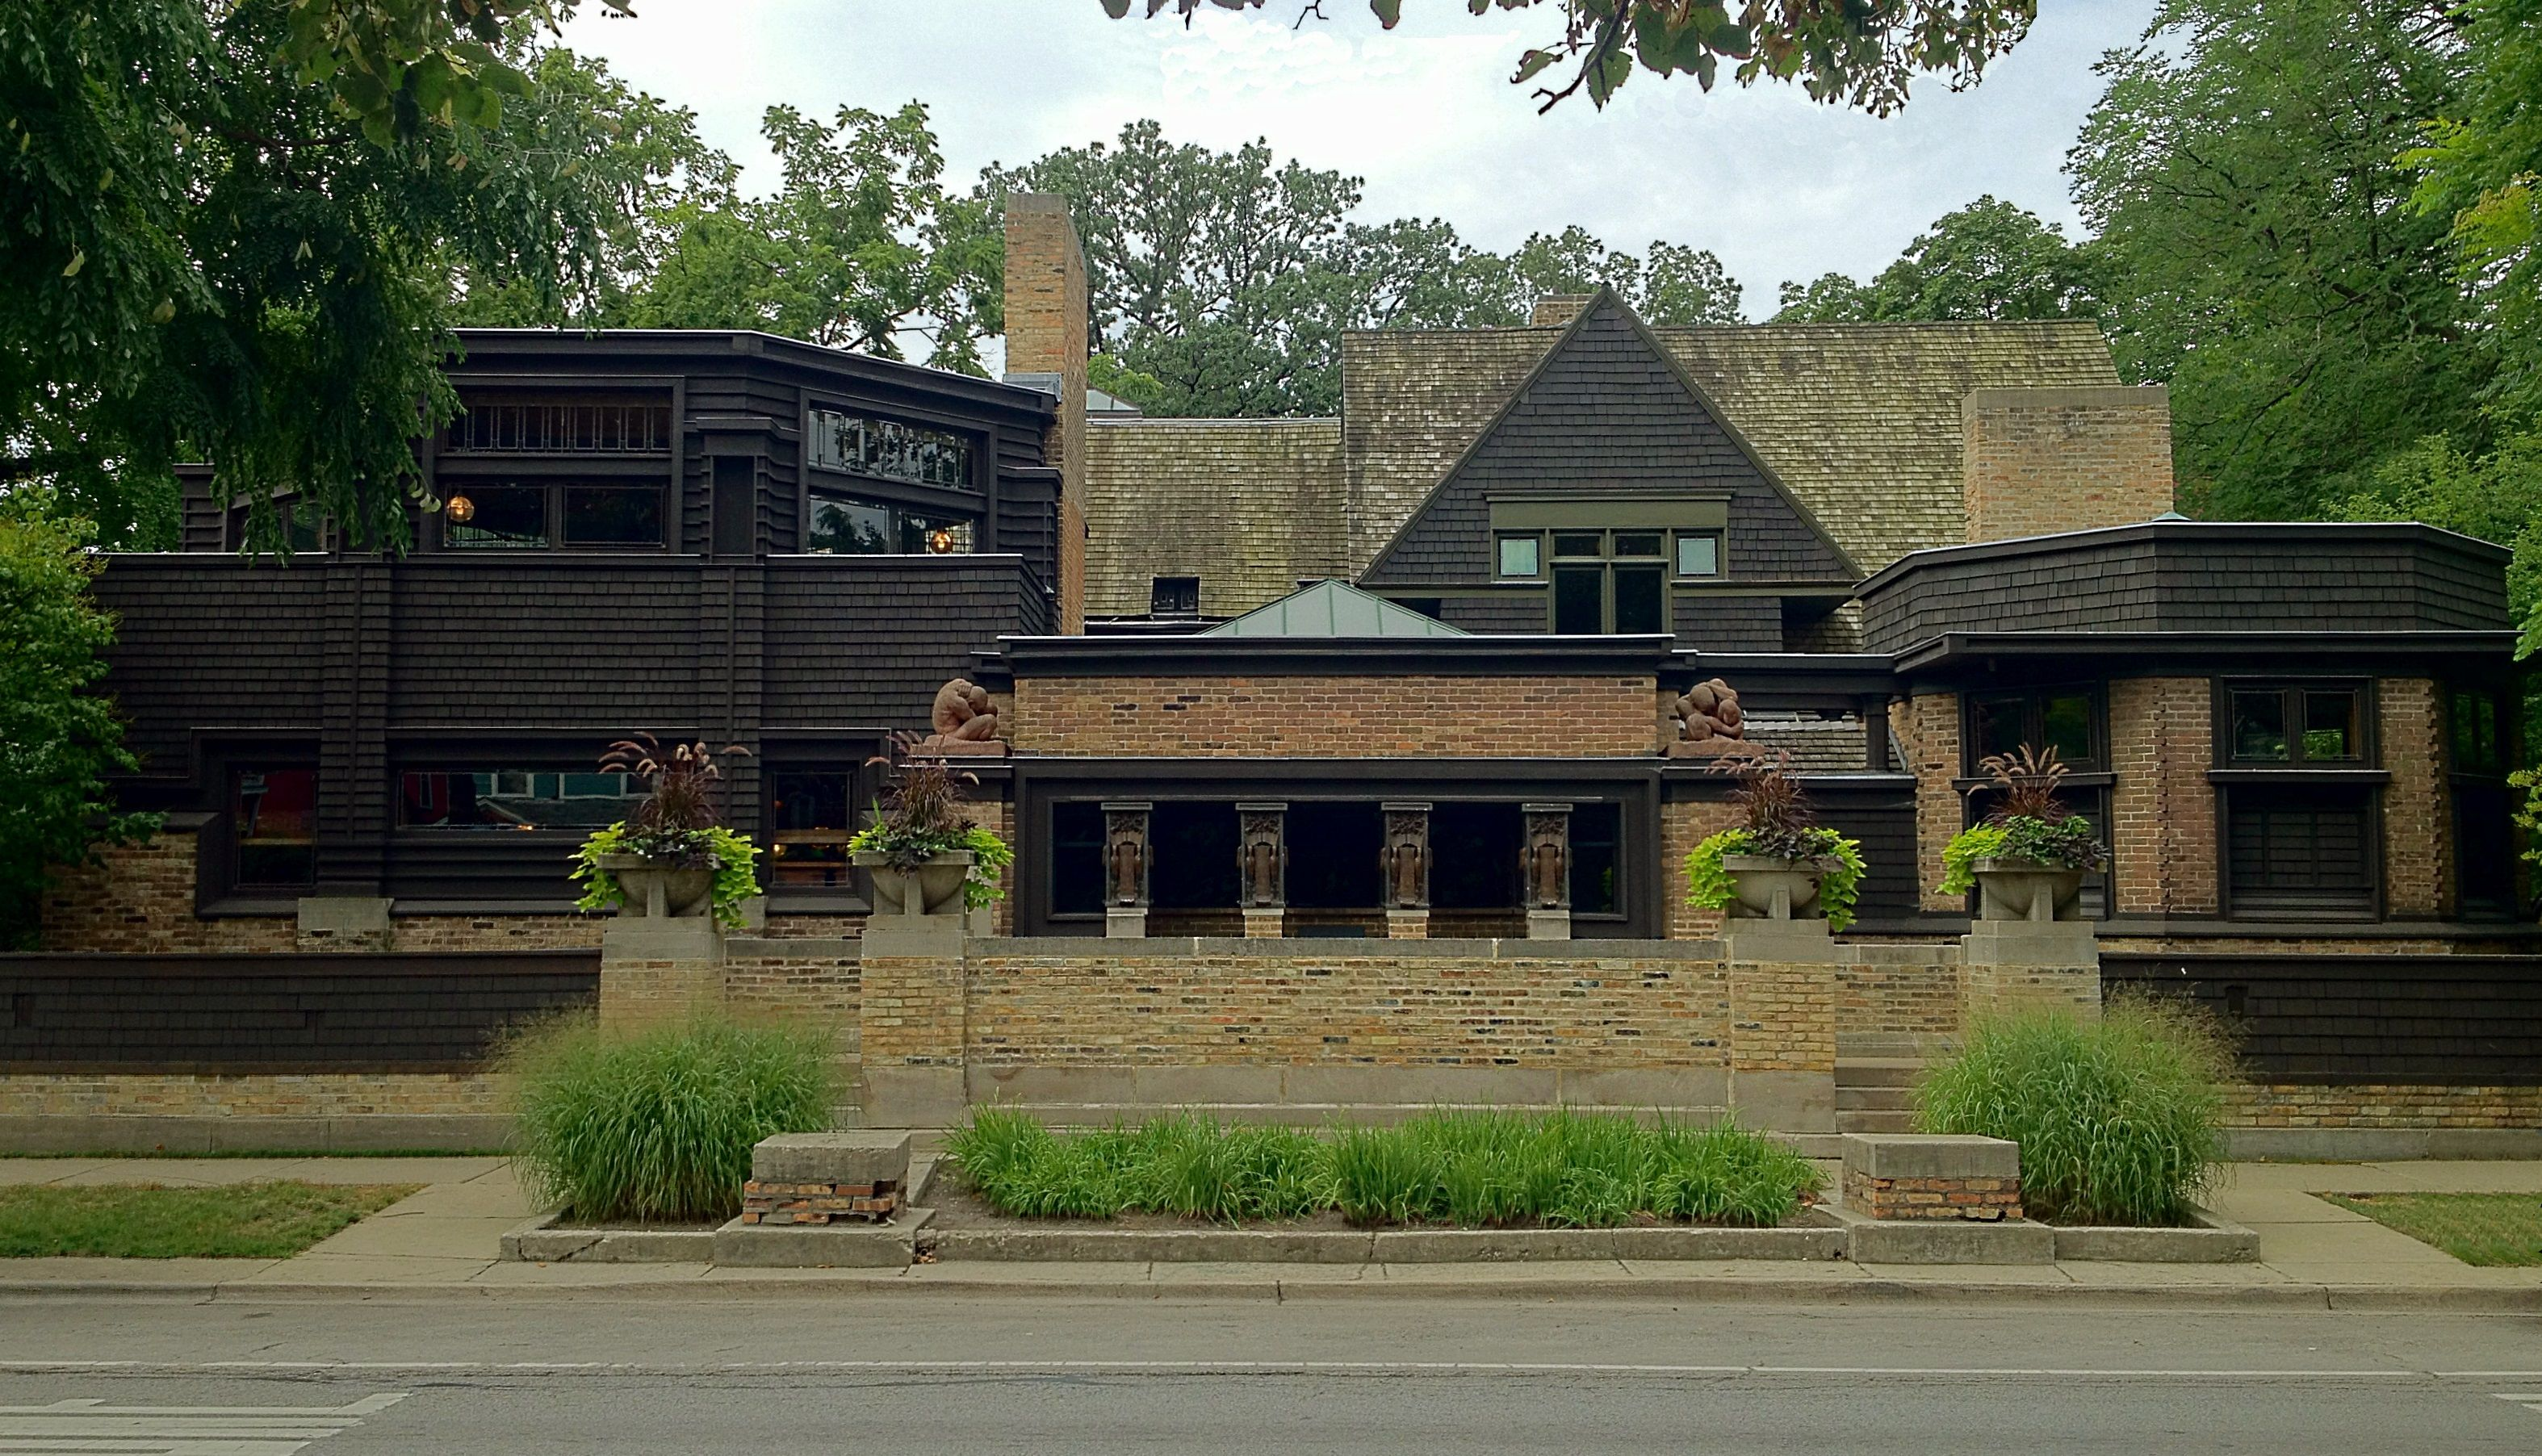 Frank lloyd wright home studio 1889 1898 951 chicago for Franks homes